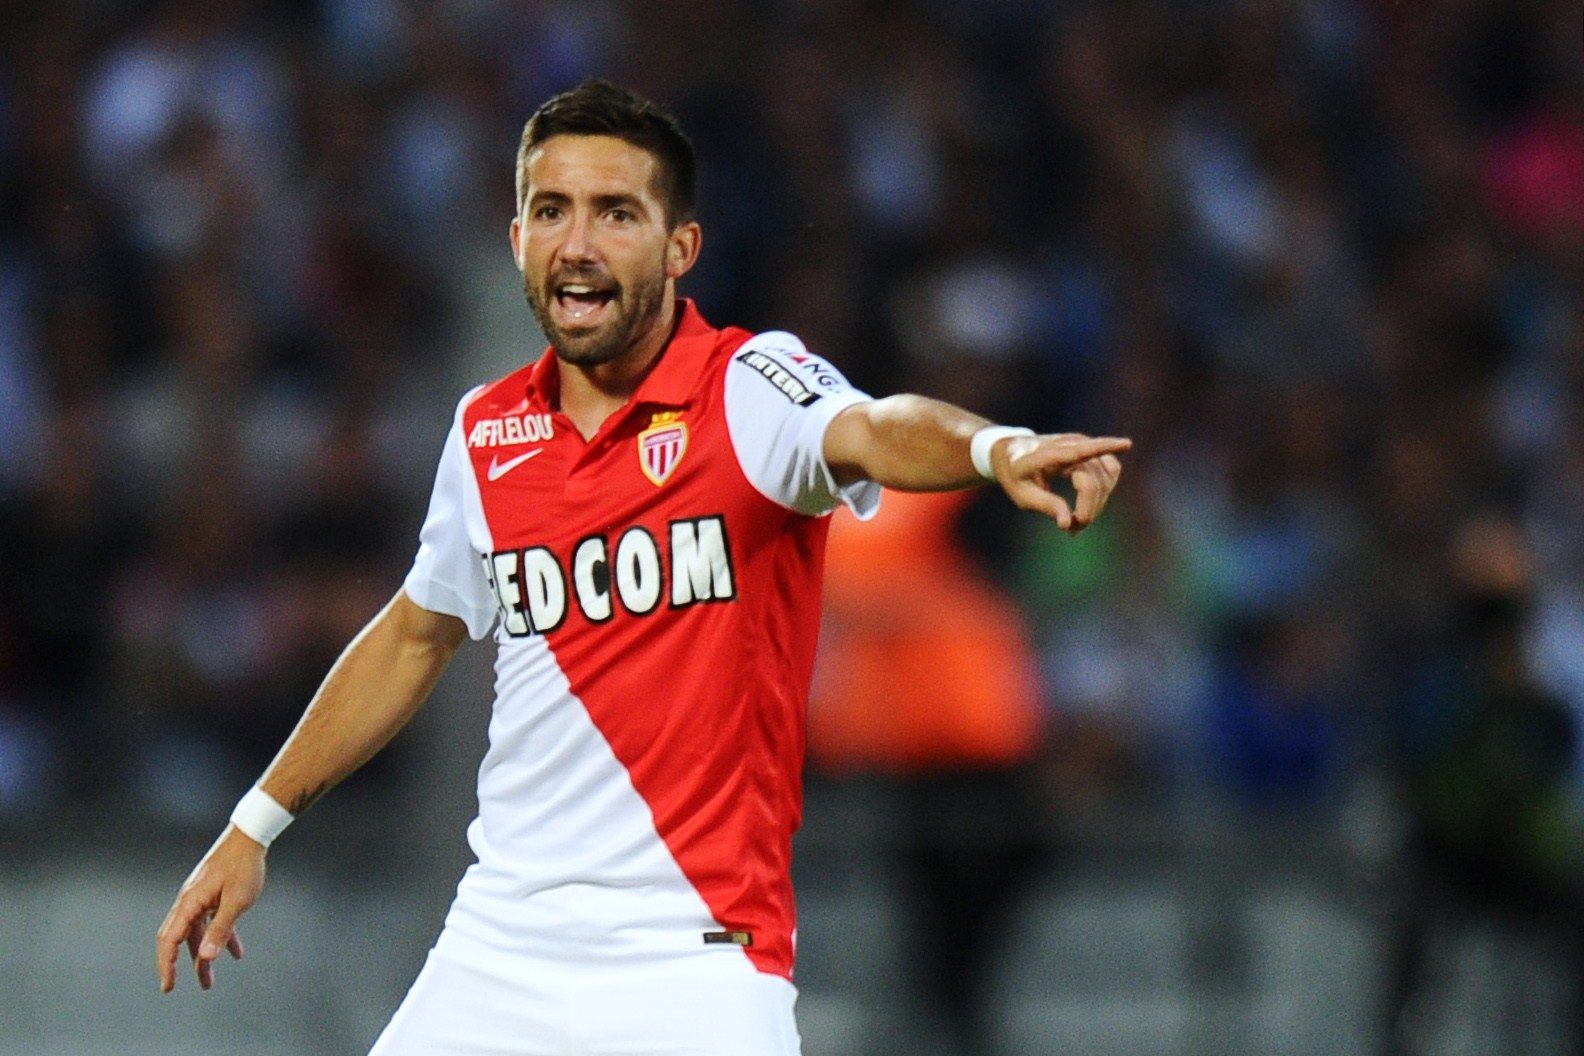 Monaco's Portuguese midfielder Joao Moutinho gestures  during  the French L1 football match between Bordeaux (FCGB) and Monaco (ASM) on August 17, 2014 at the Chaban-Delmas Stadium in Bordeaux, southwestern France. AFP PHOTO / NICOLAS TUCAT        (Photo credit should read NICOLAS TUCAT/AFP/Getty Images)